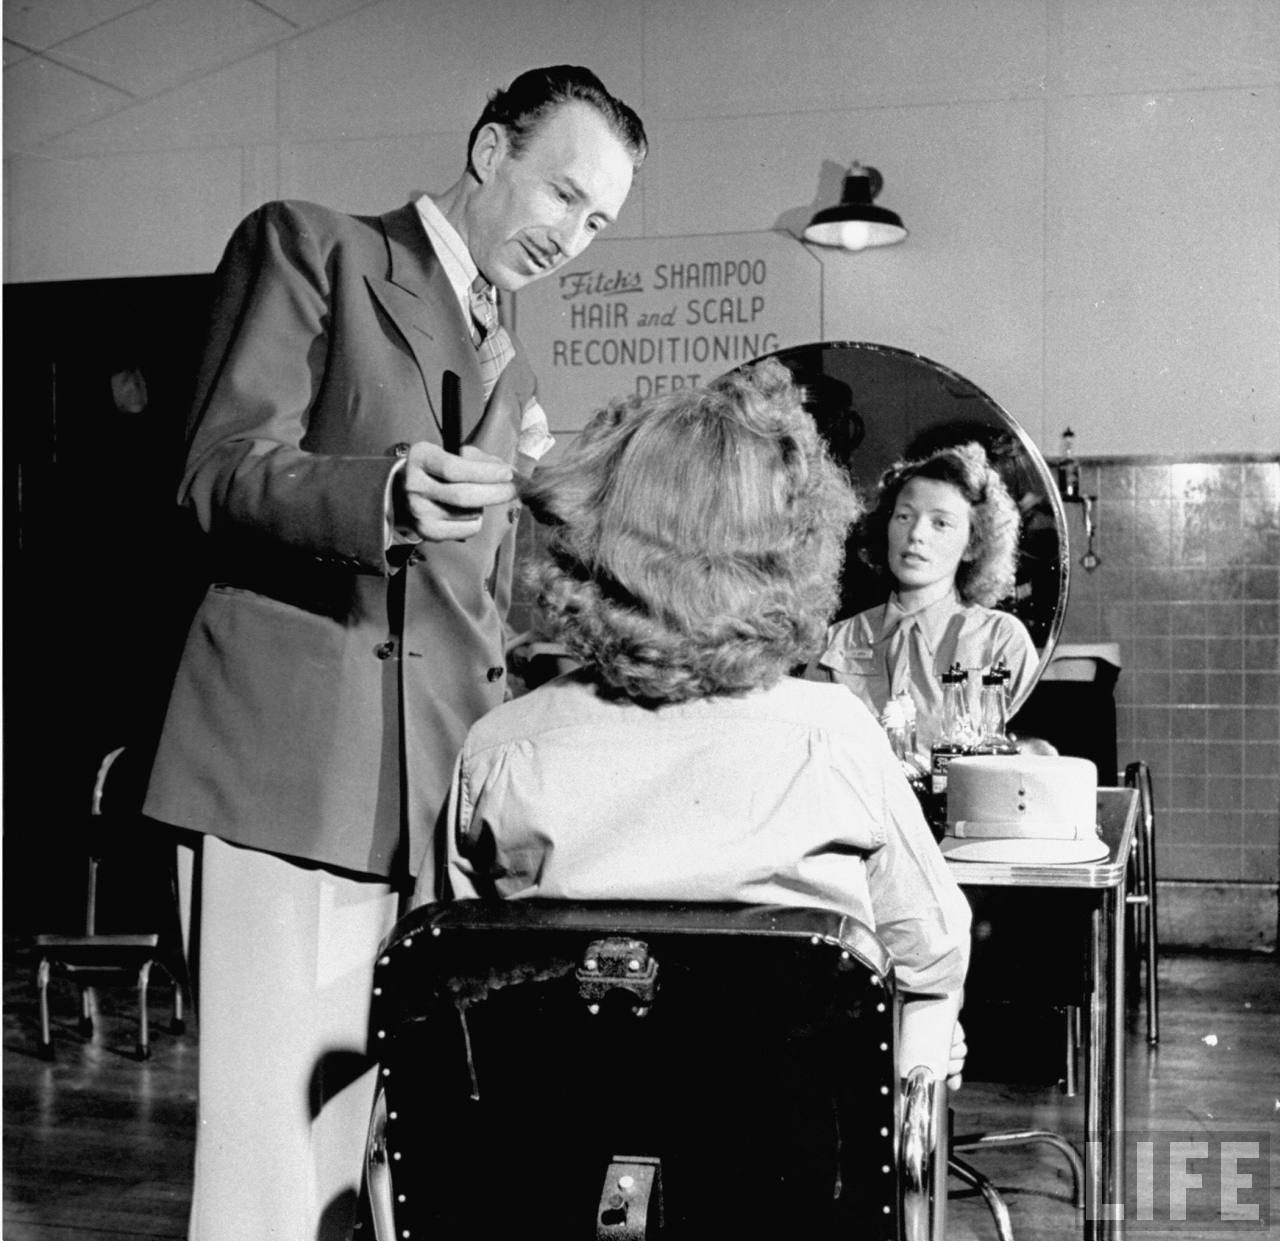 Wac Haircut Fort Des Moines 1942 Historys Mysteries Pinterest